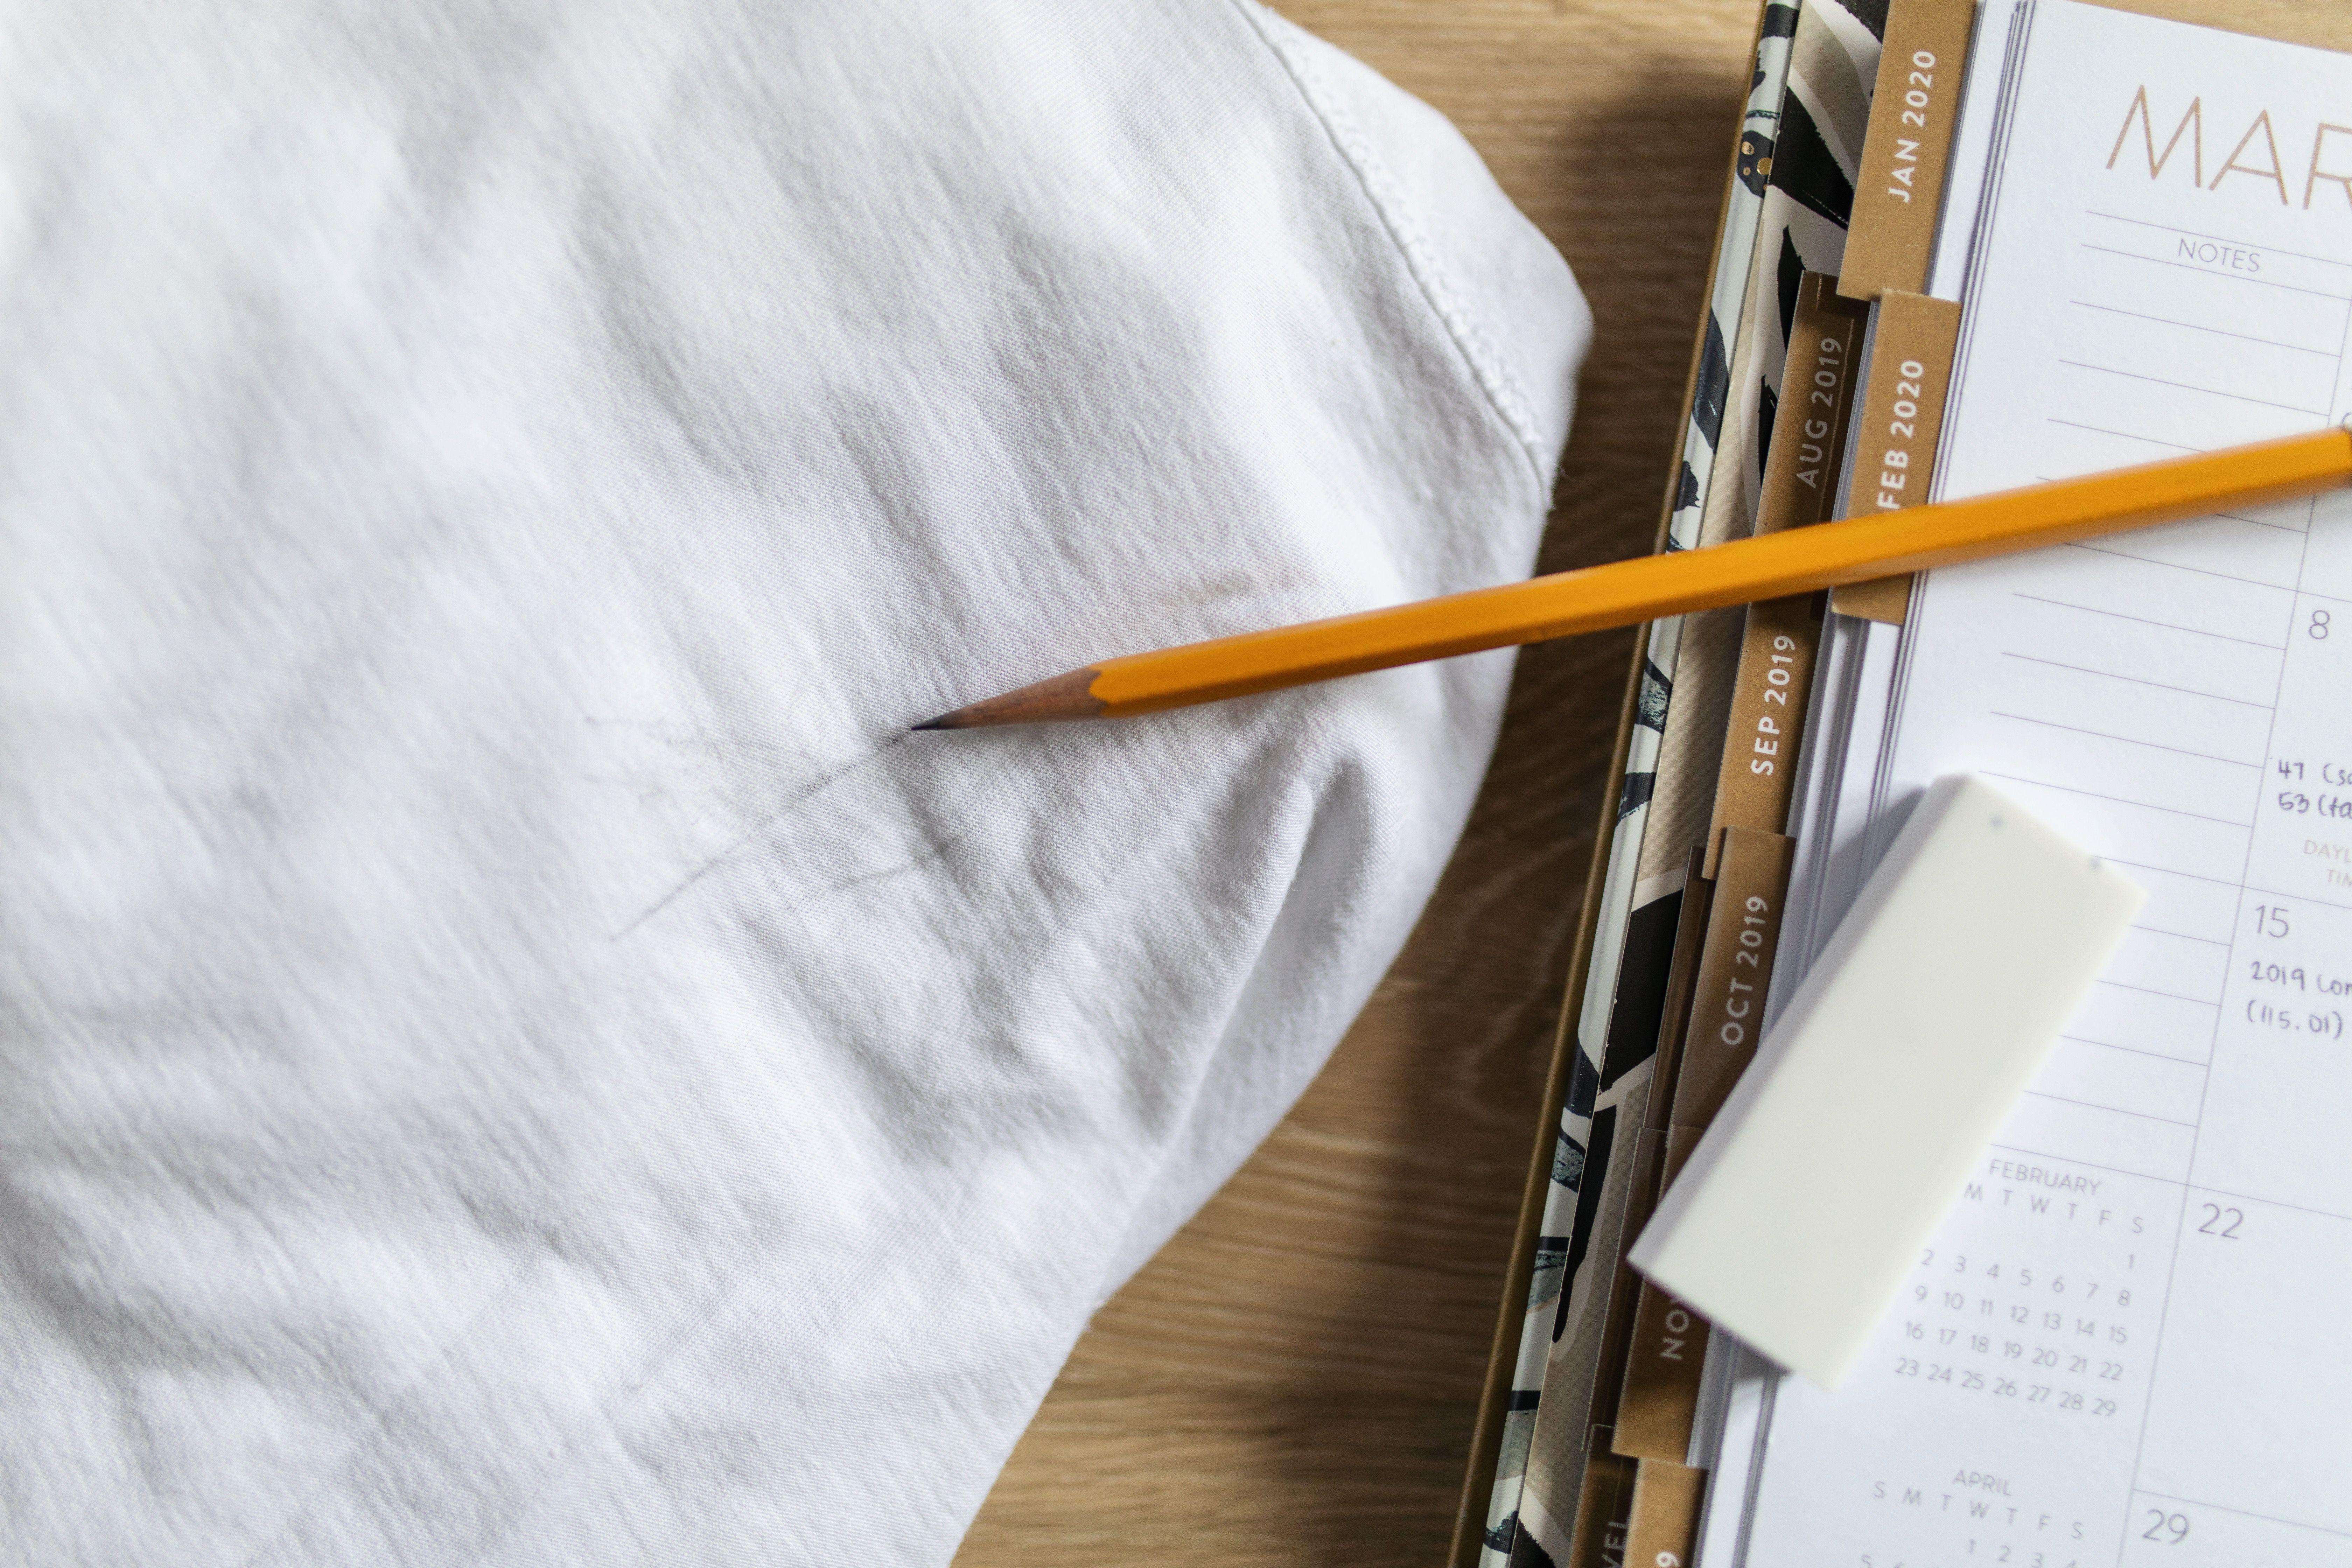 removing pencil stains in a few simple steps